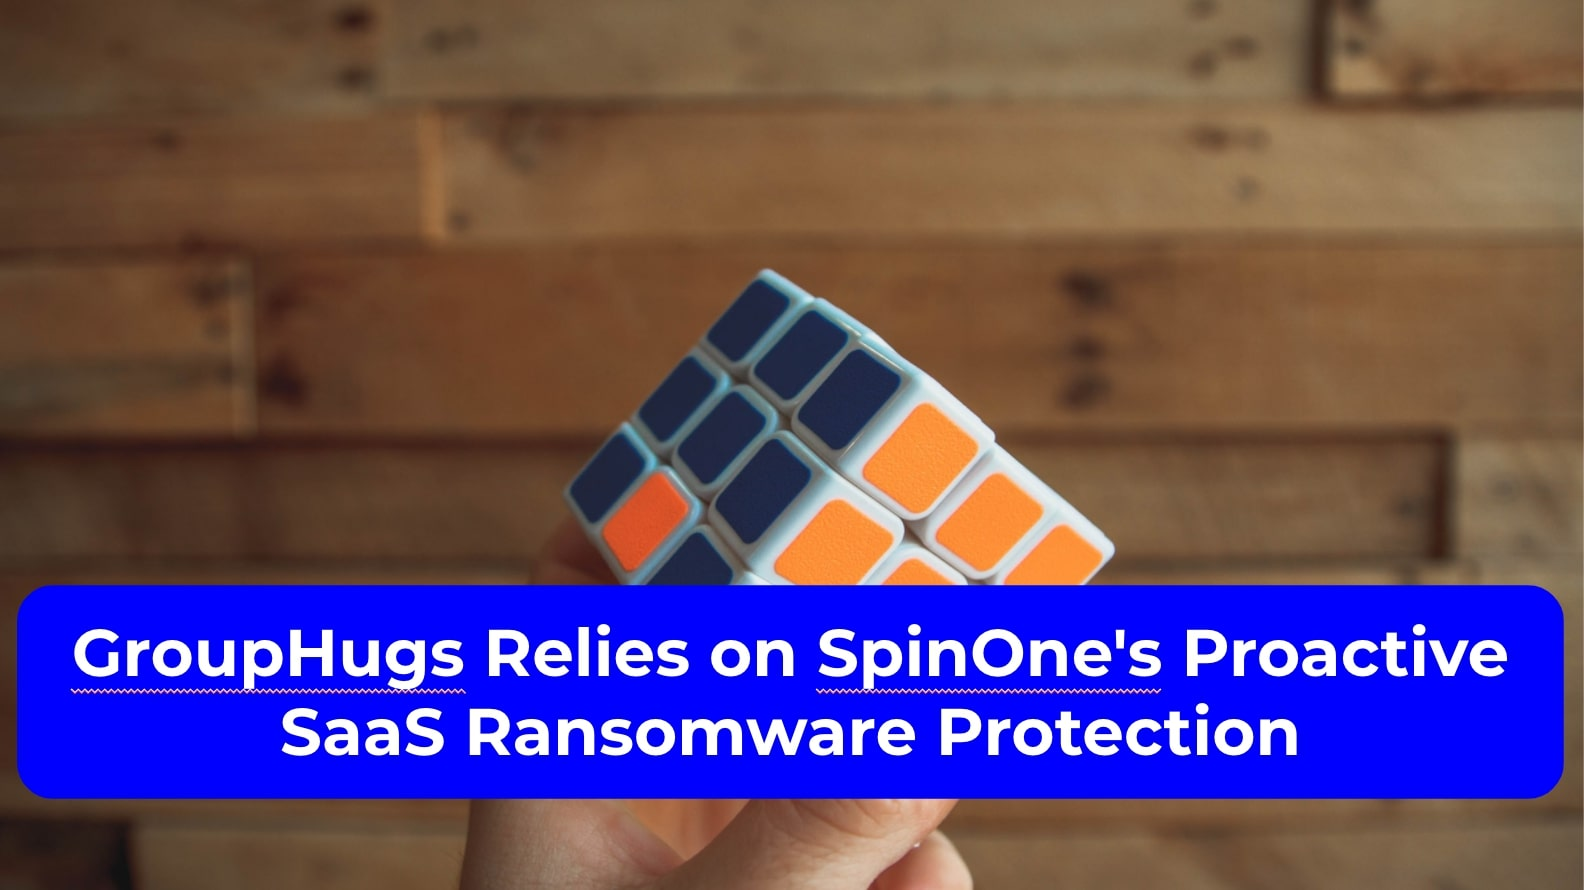 GroupHugs Relies on SpinOne's Proactive SaaS Ransomware Protection